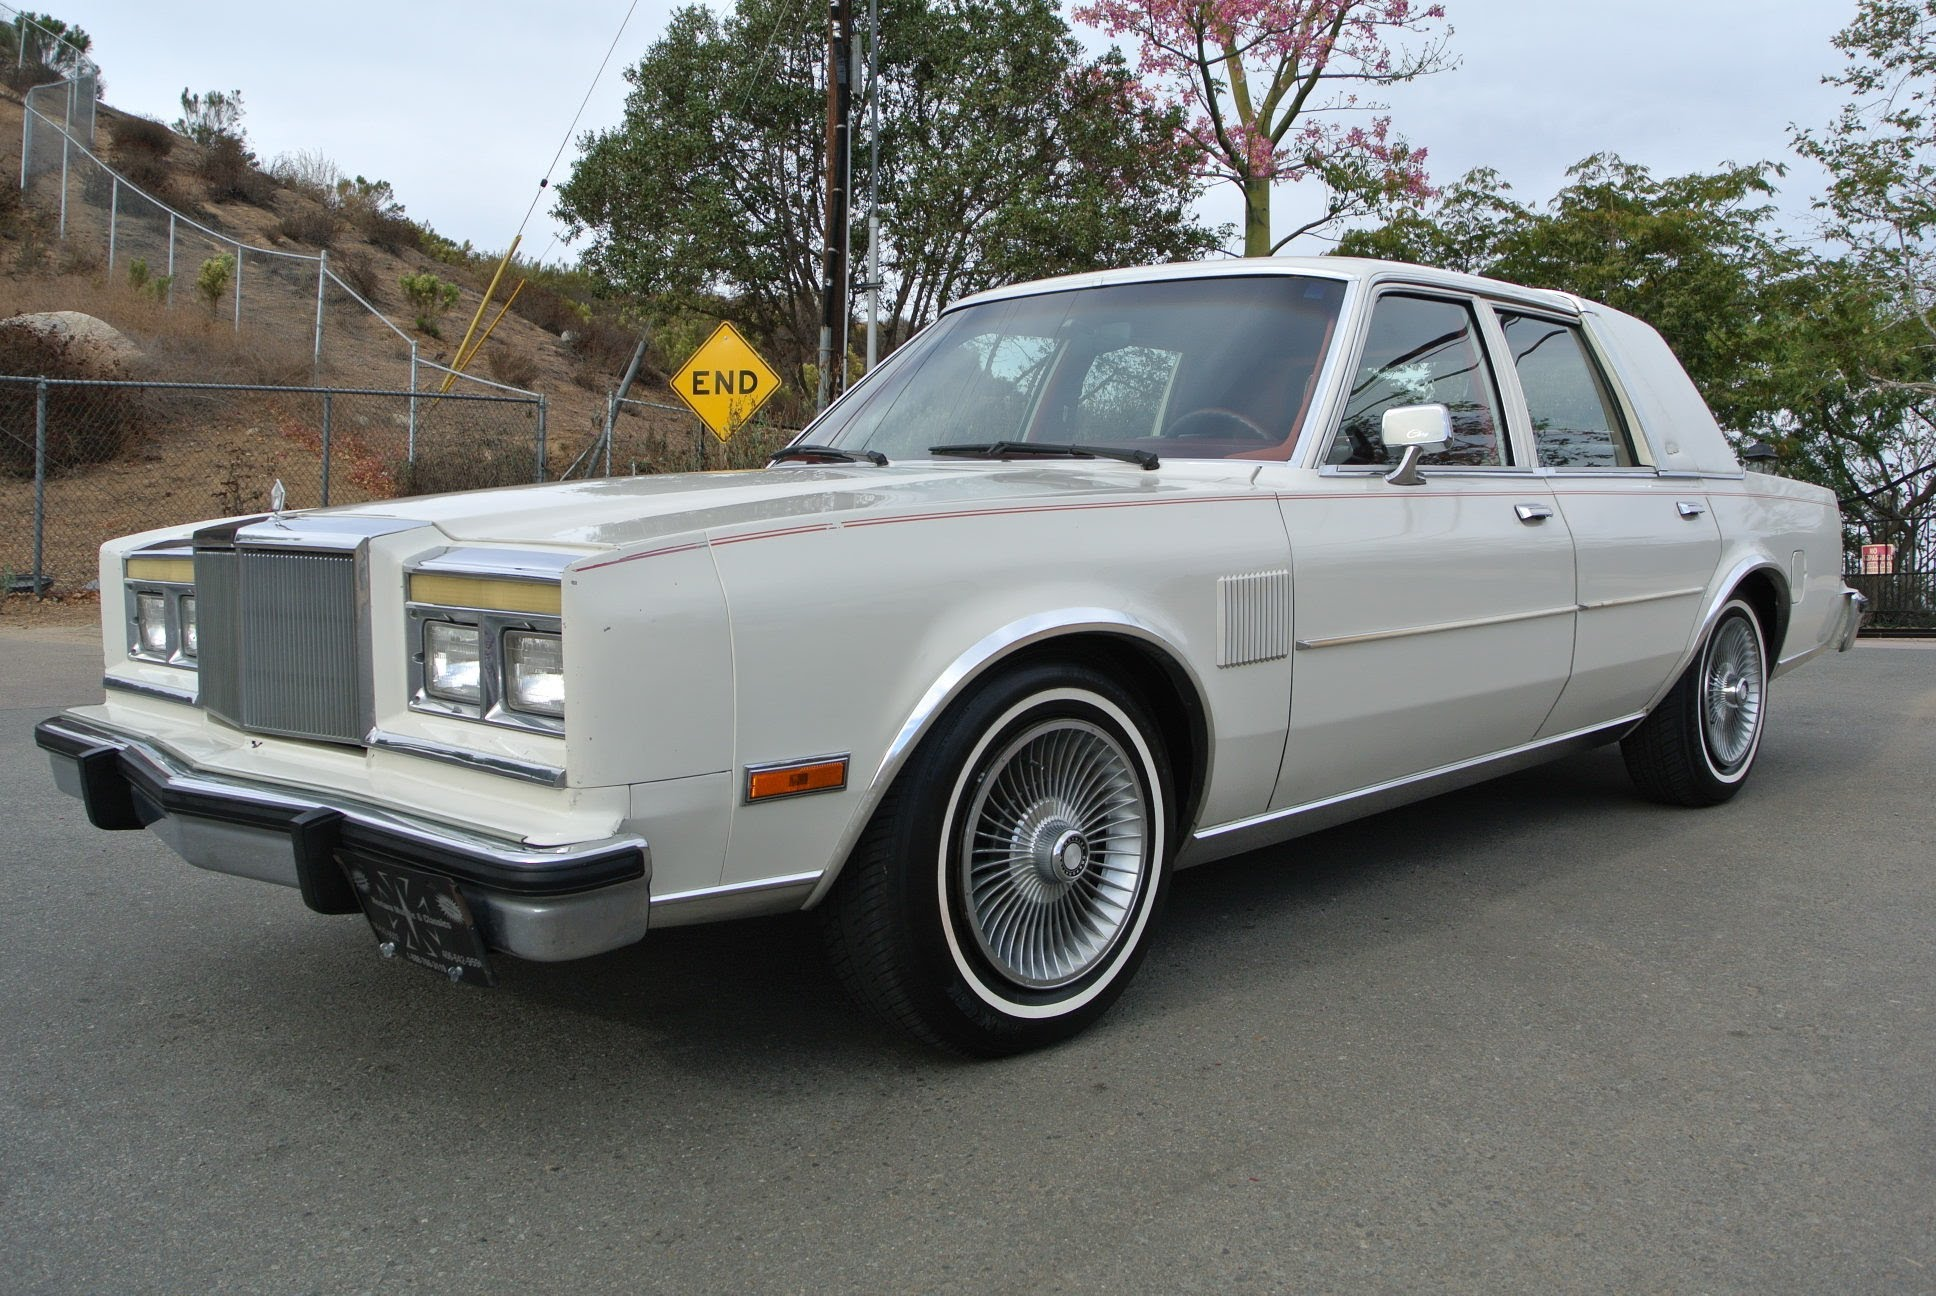 Chrysler Fifth Avenue I 1982 - 1989 Sedan #6